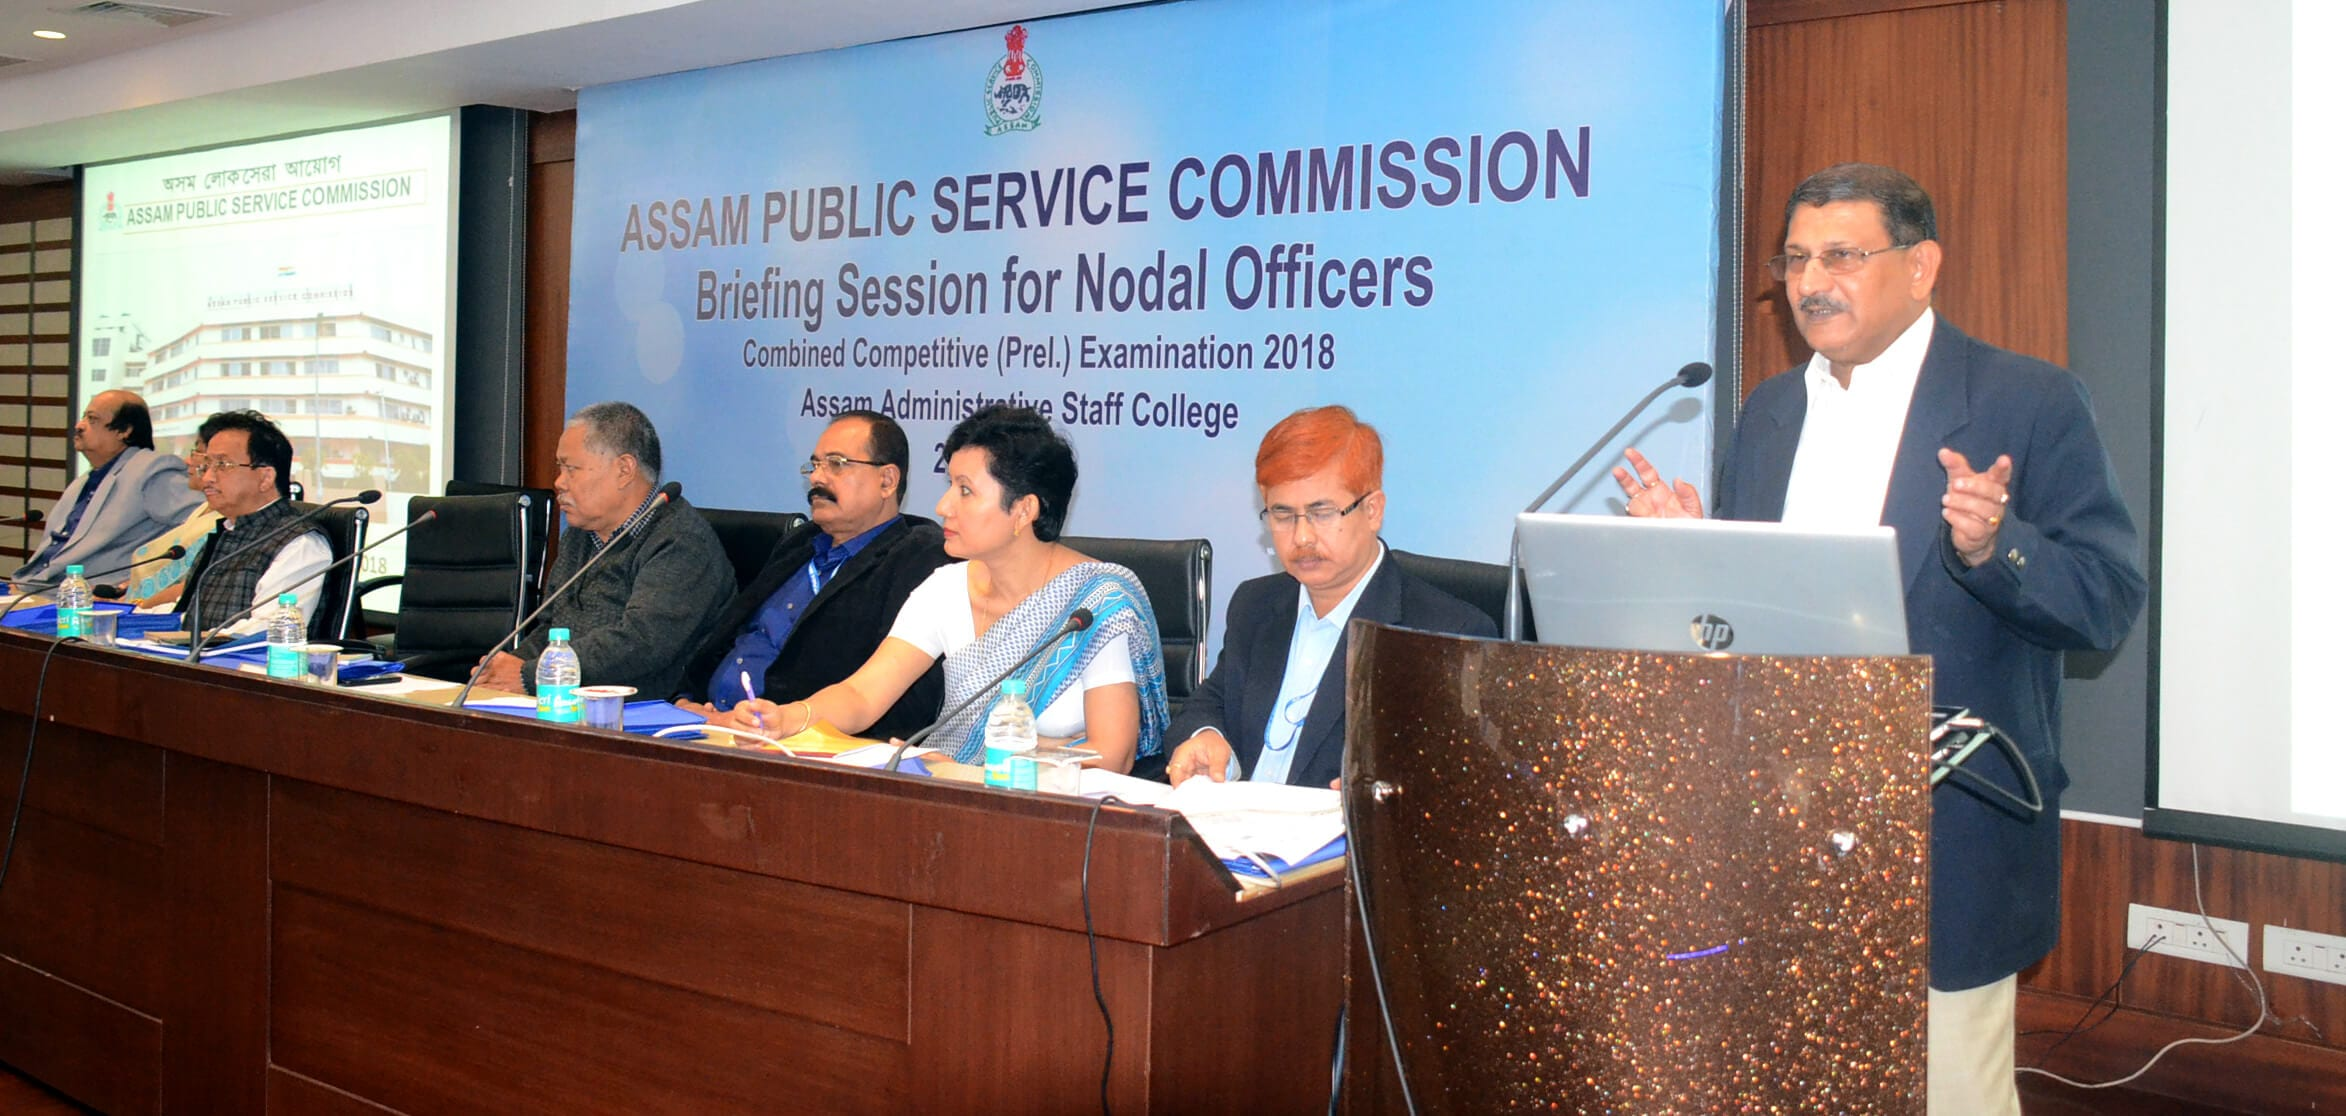 Assam Public Service Commission (APSC) held meeting with nodal officers